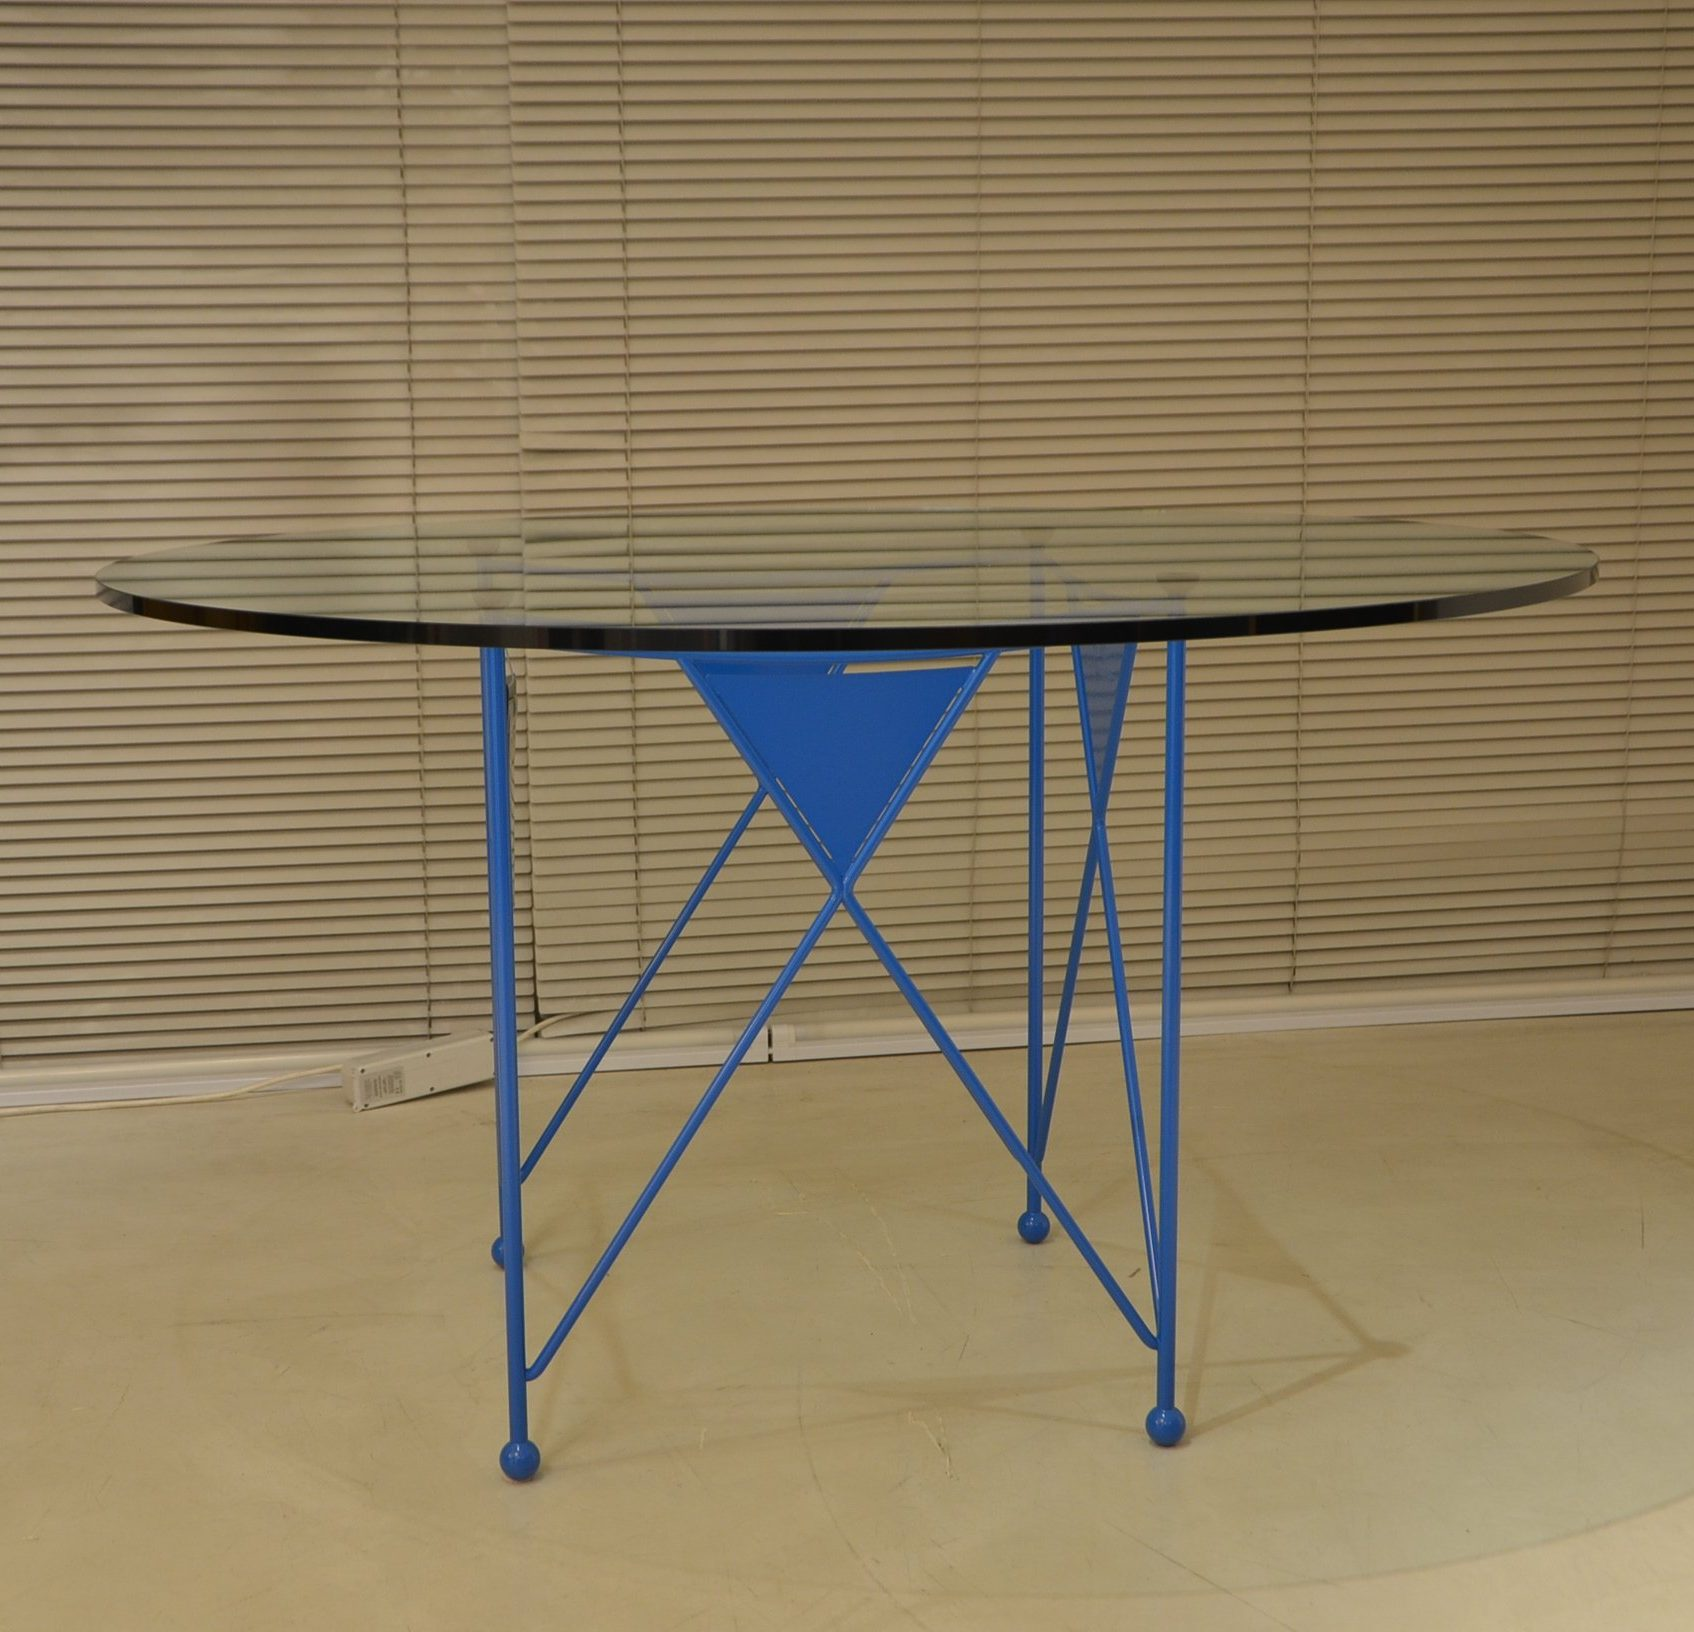 MIDWAY 3 Frank Lloyd Wright Cassina original table design Made in Italy